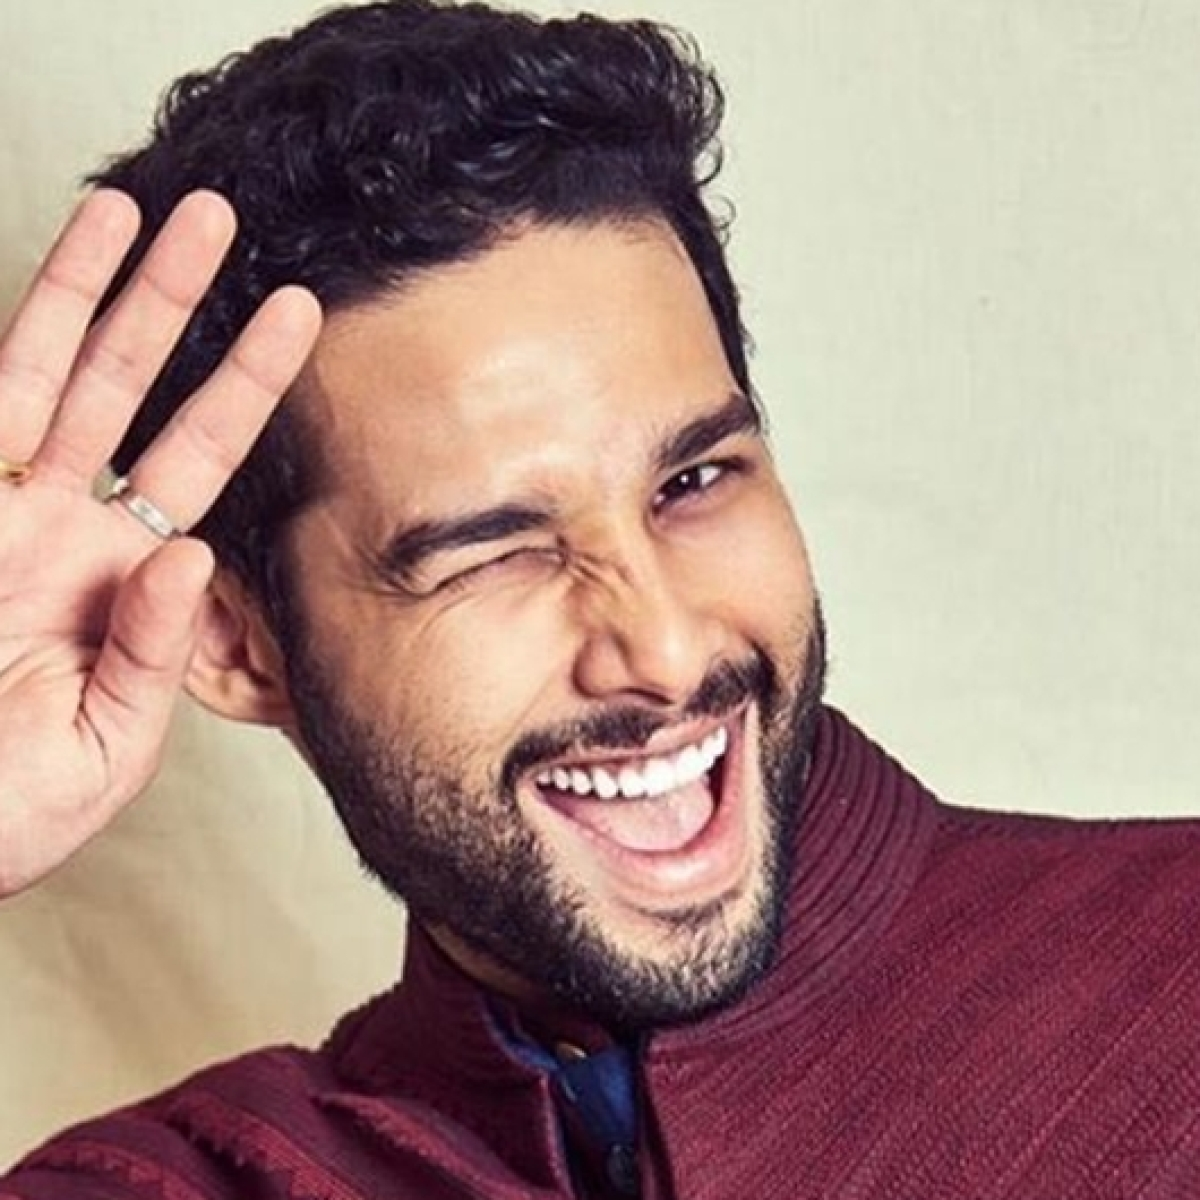 'Now I am conscious of whatever I say': Siddhant Chaturvedi on nepotism controversy